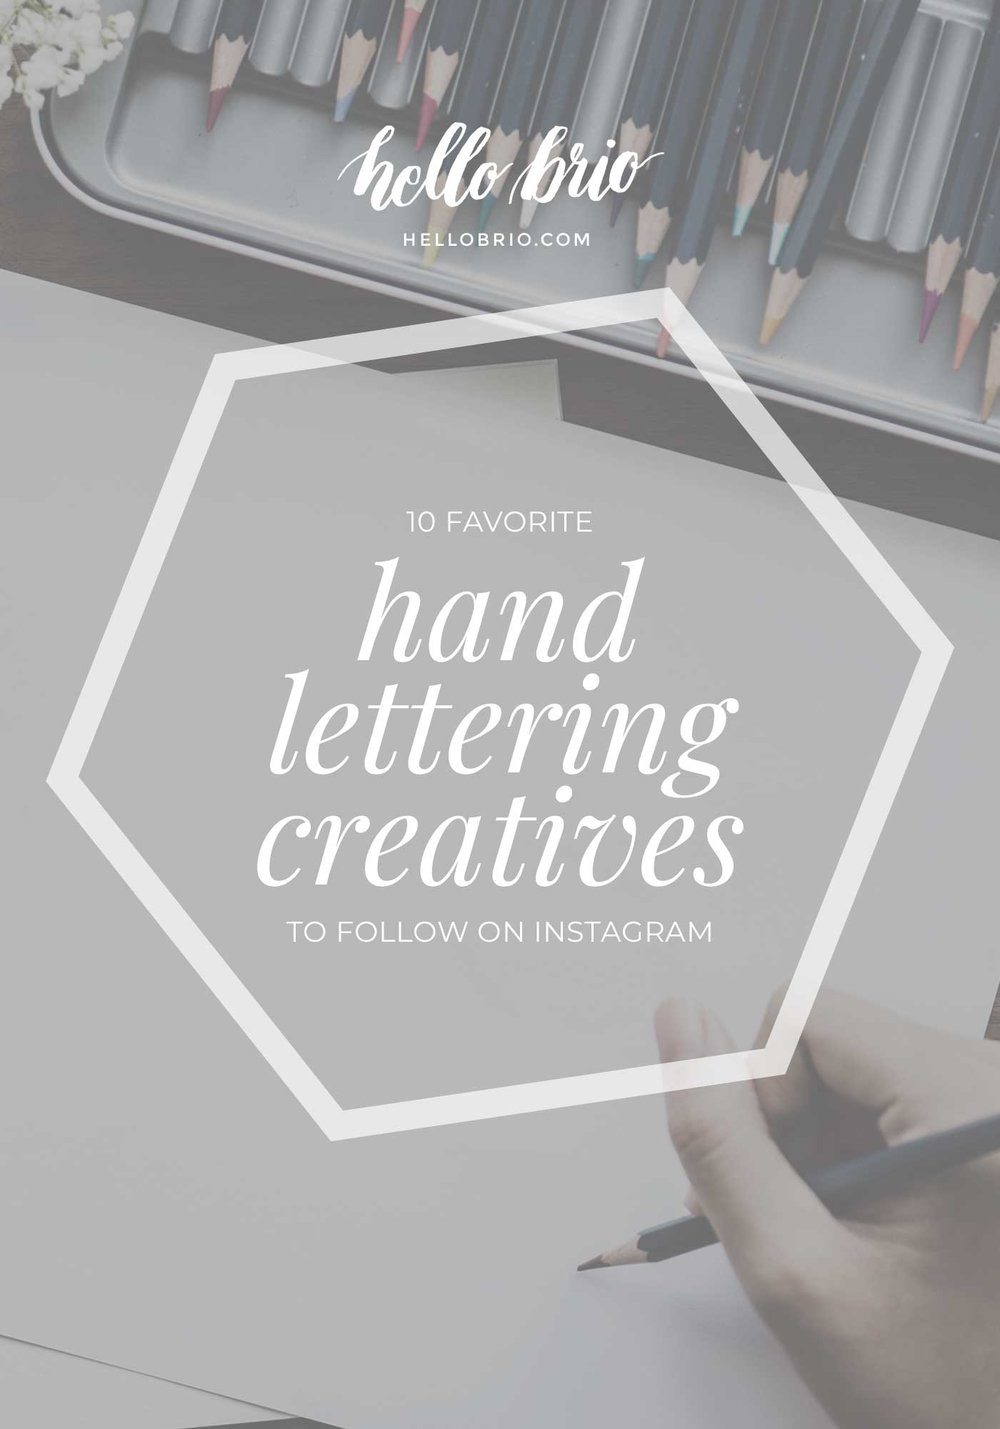 10 favorite hand lettering creatives to follow on Instagram